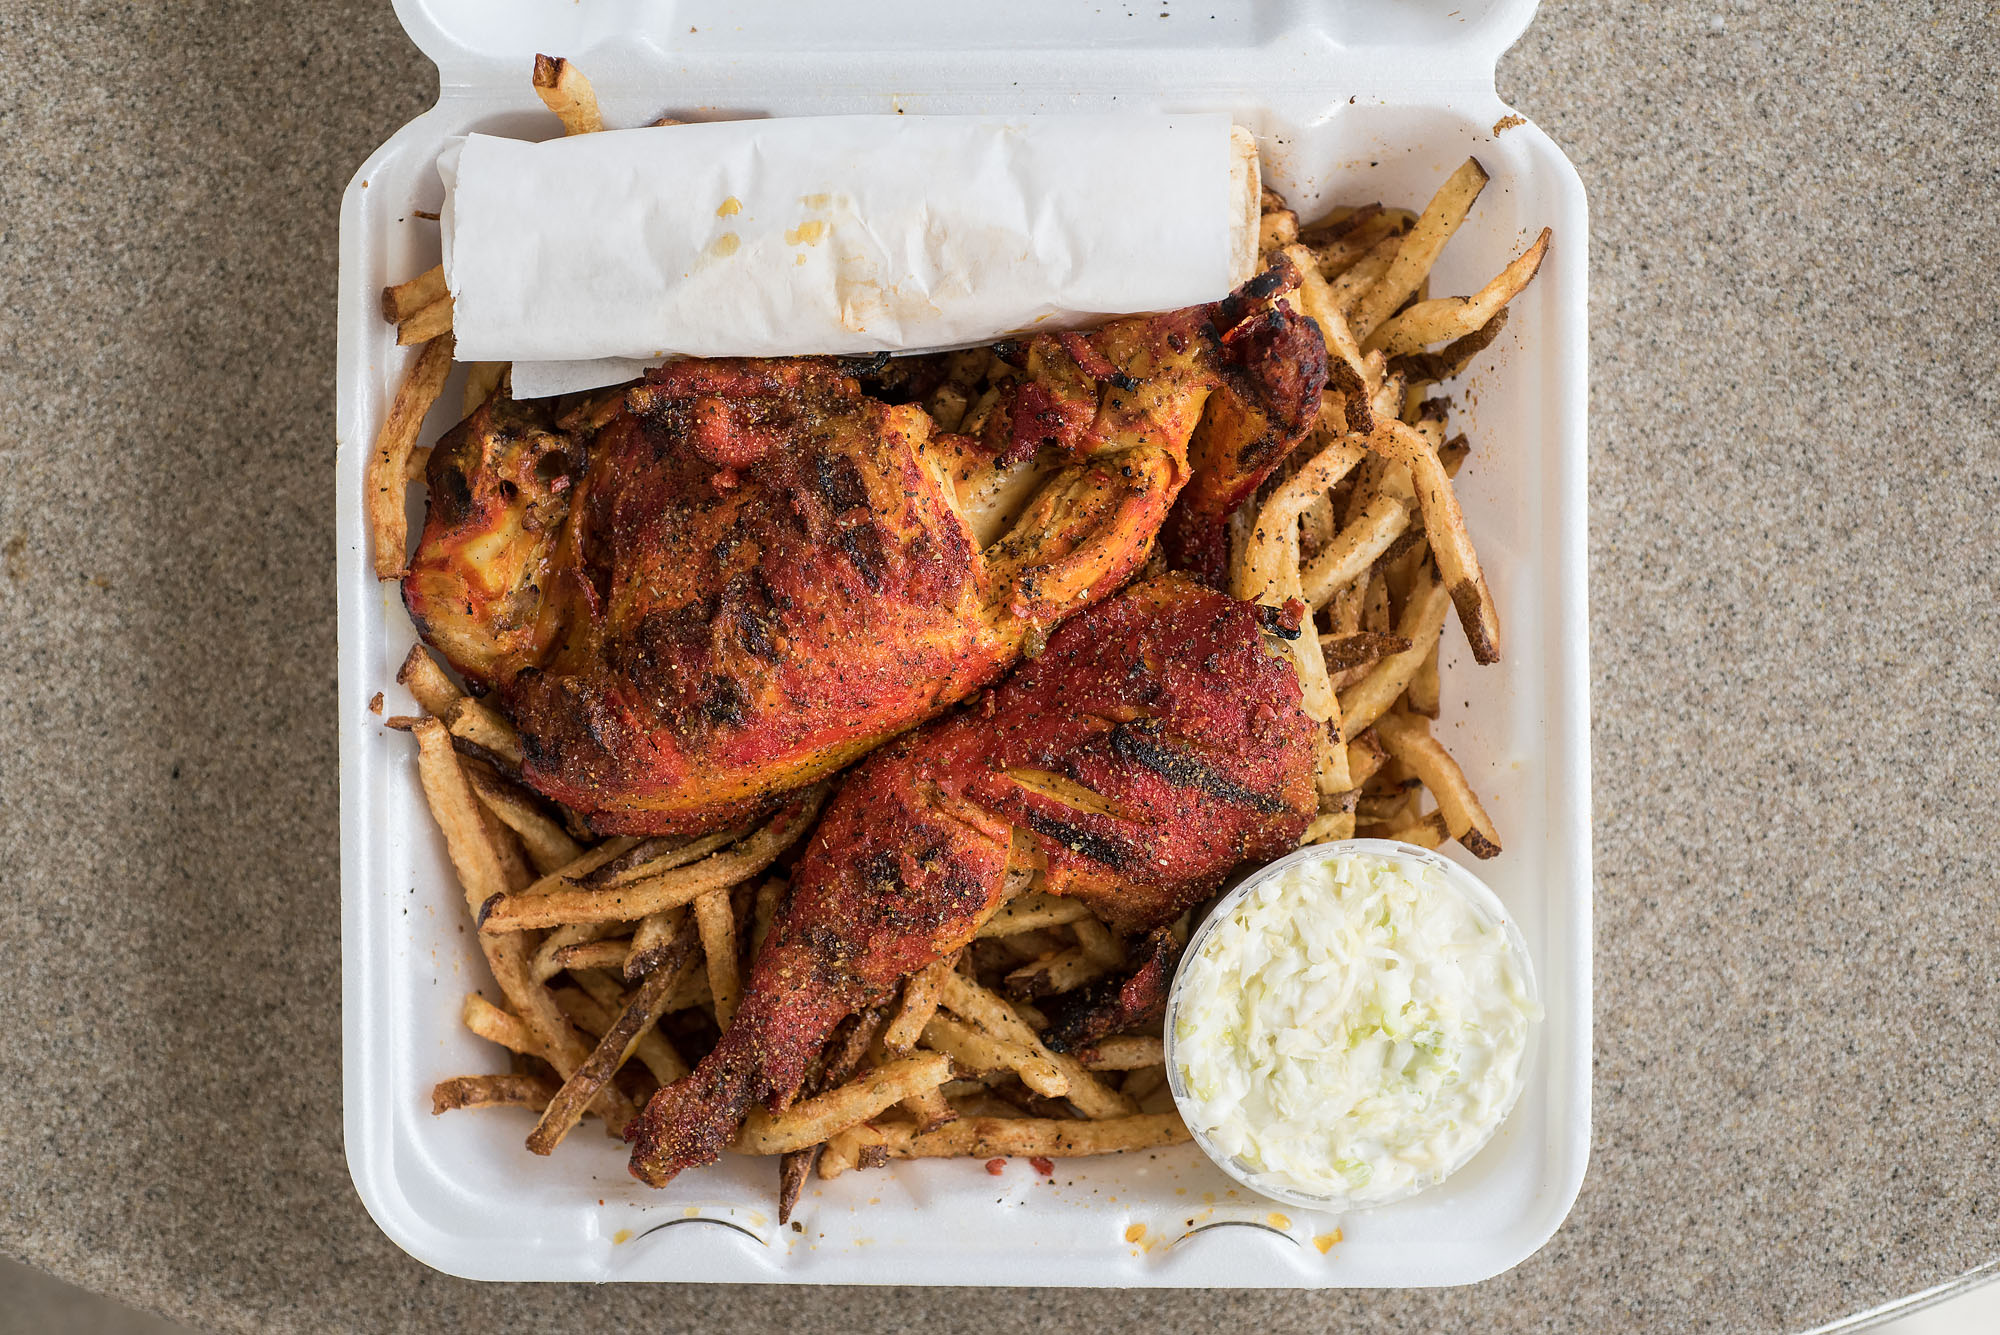 An overhead shot of red sauced grilled chicken atop fries in a takeout container.